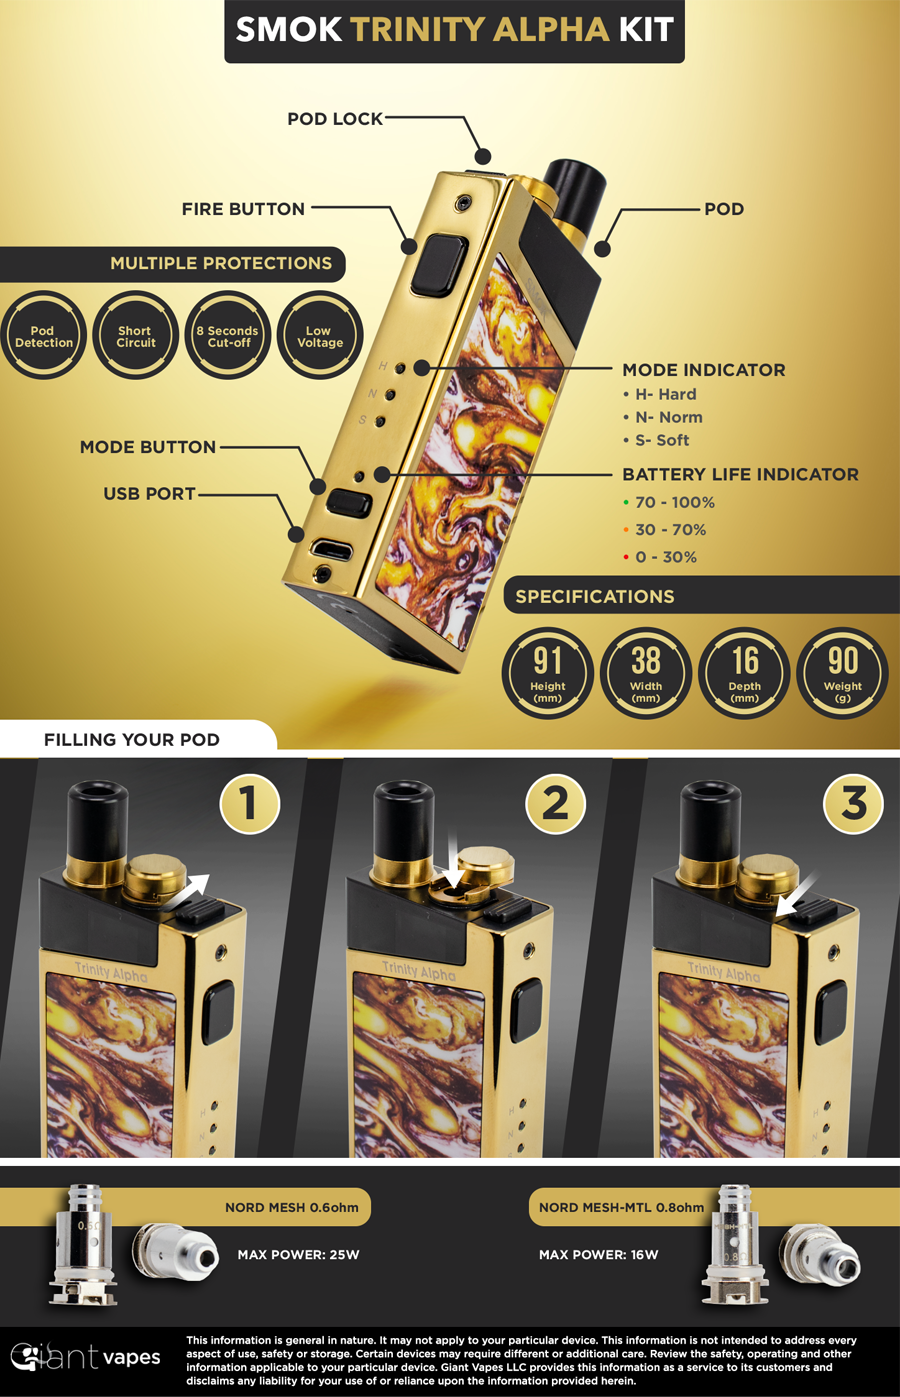 SMOK Trinity Alpha Kit Infographic